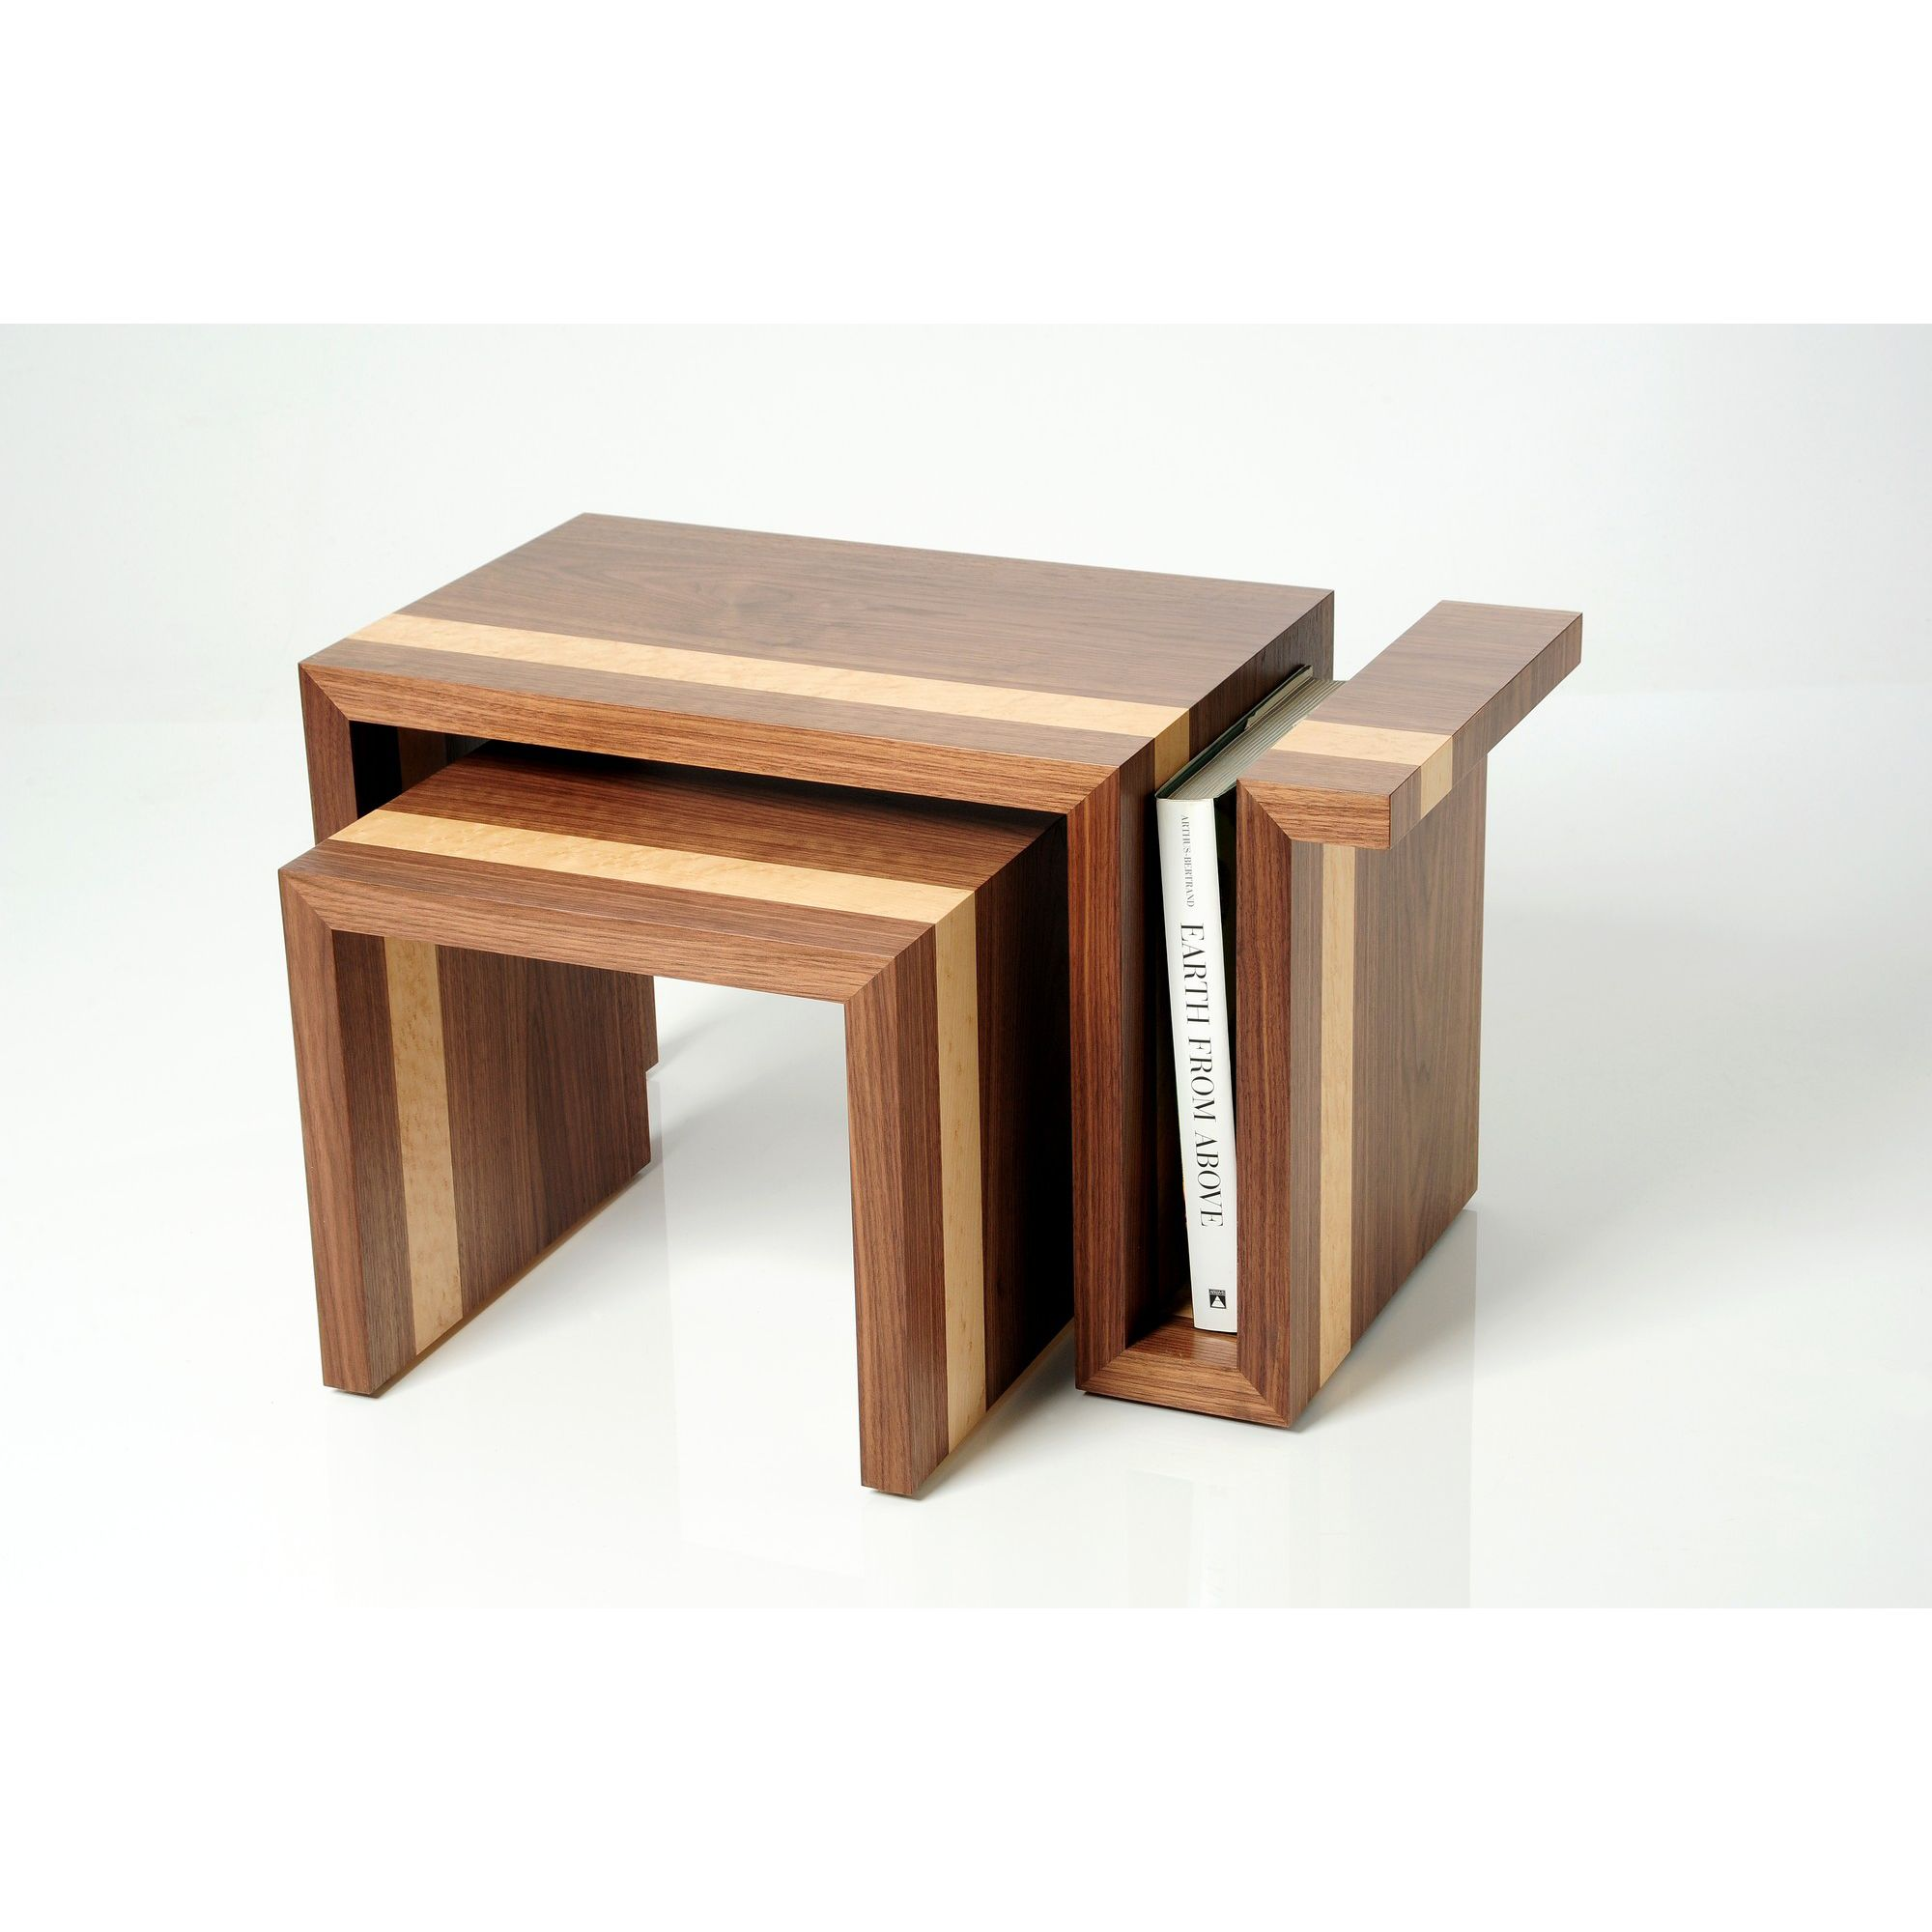 Trefurn Revival Nest Coffee Table - Fumed Oak and Birds Eye Maple at Tesco Direct